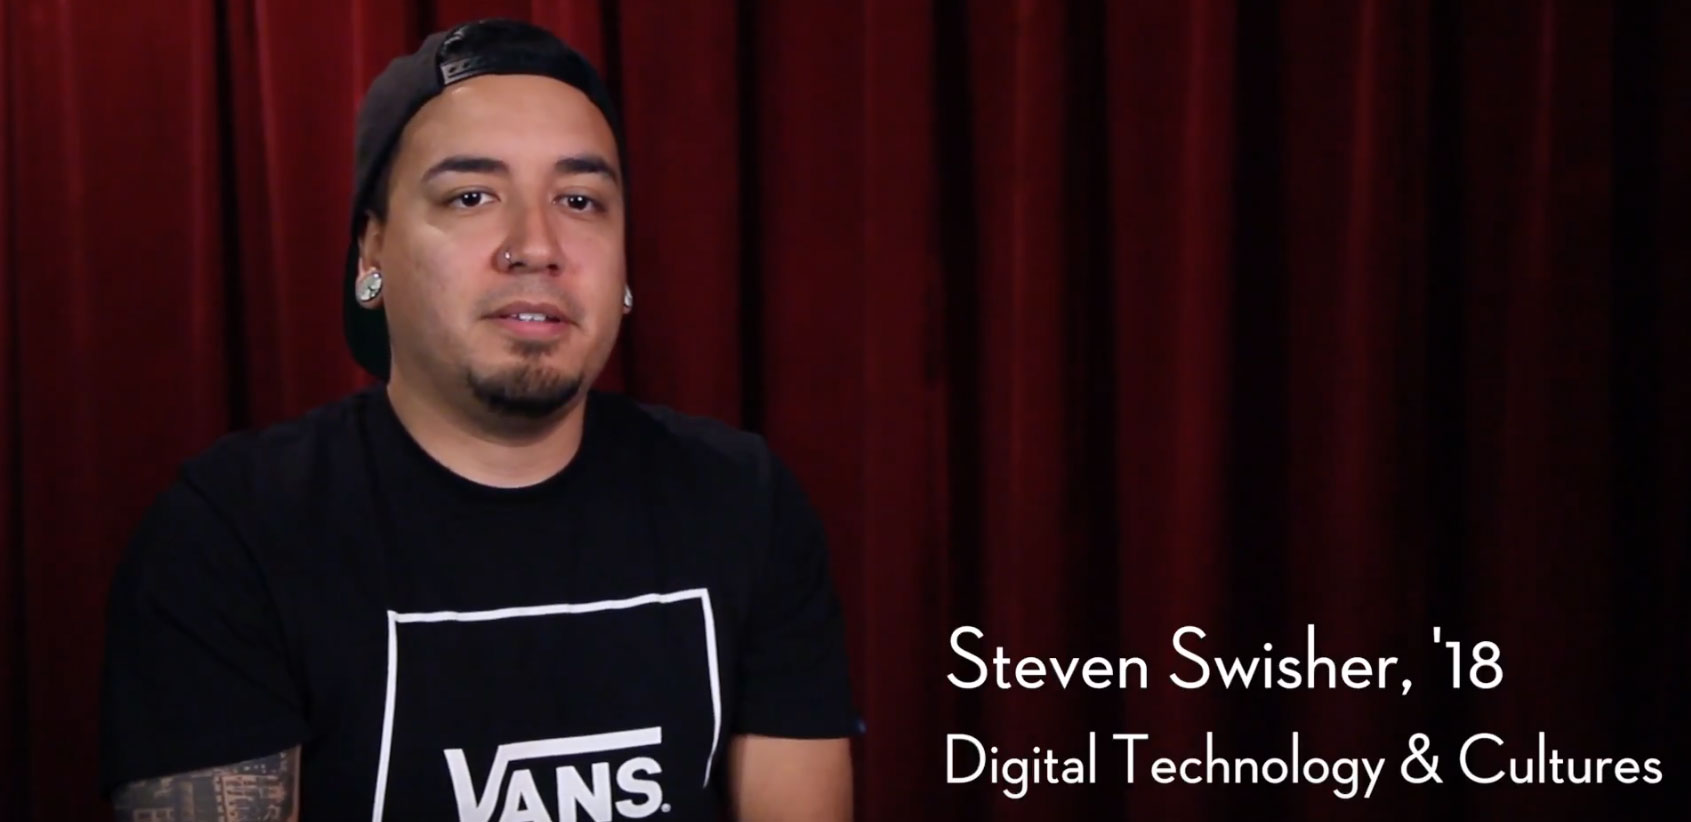 Steven Swisher, '18 Digital Technology and Cultures